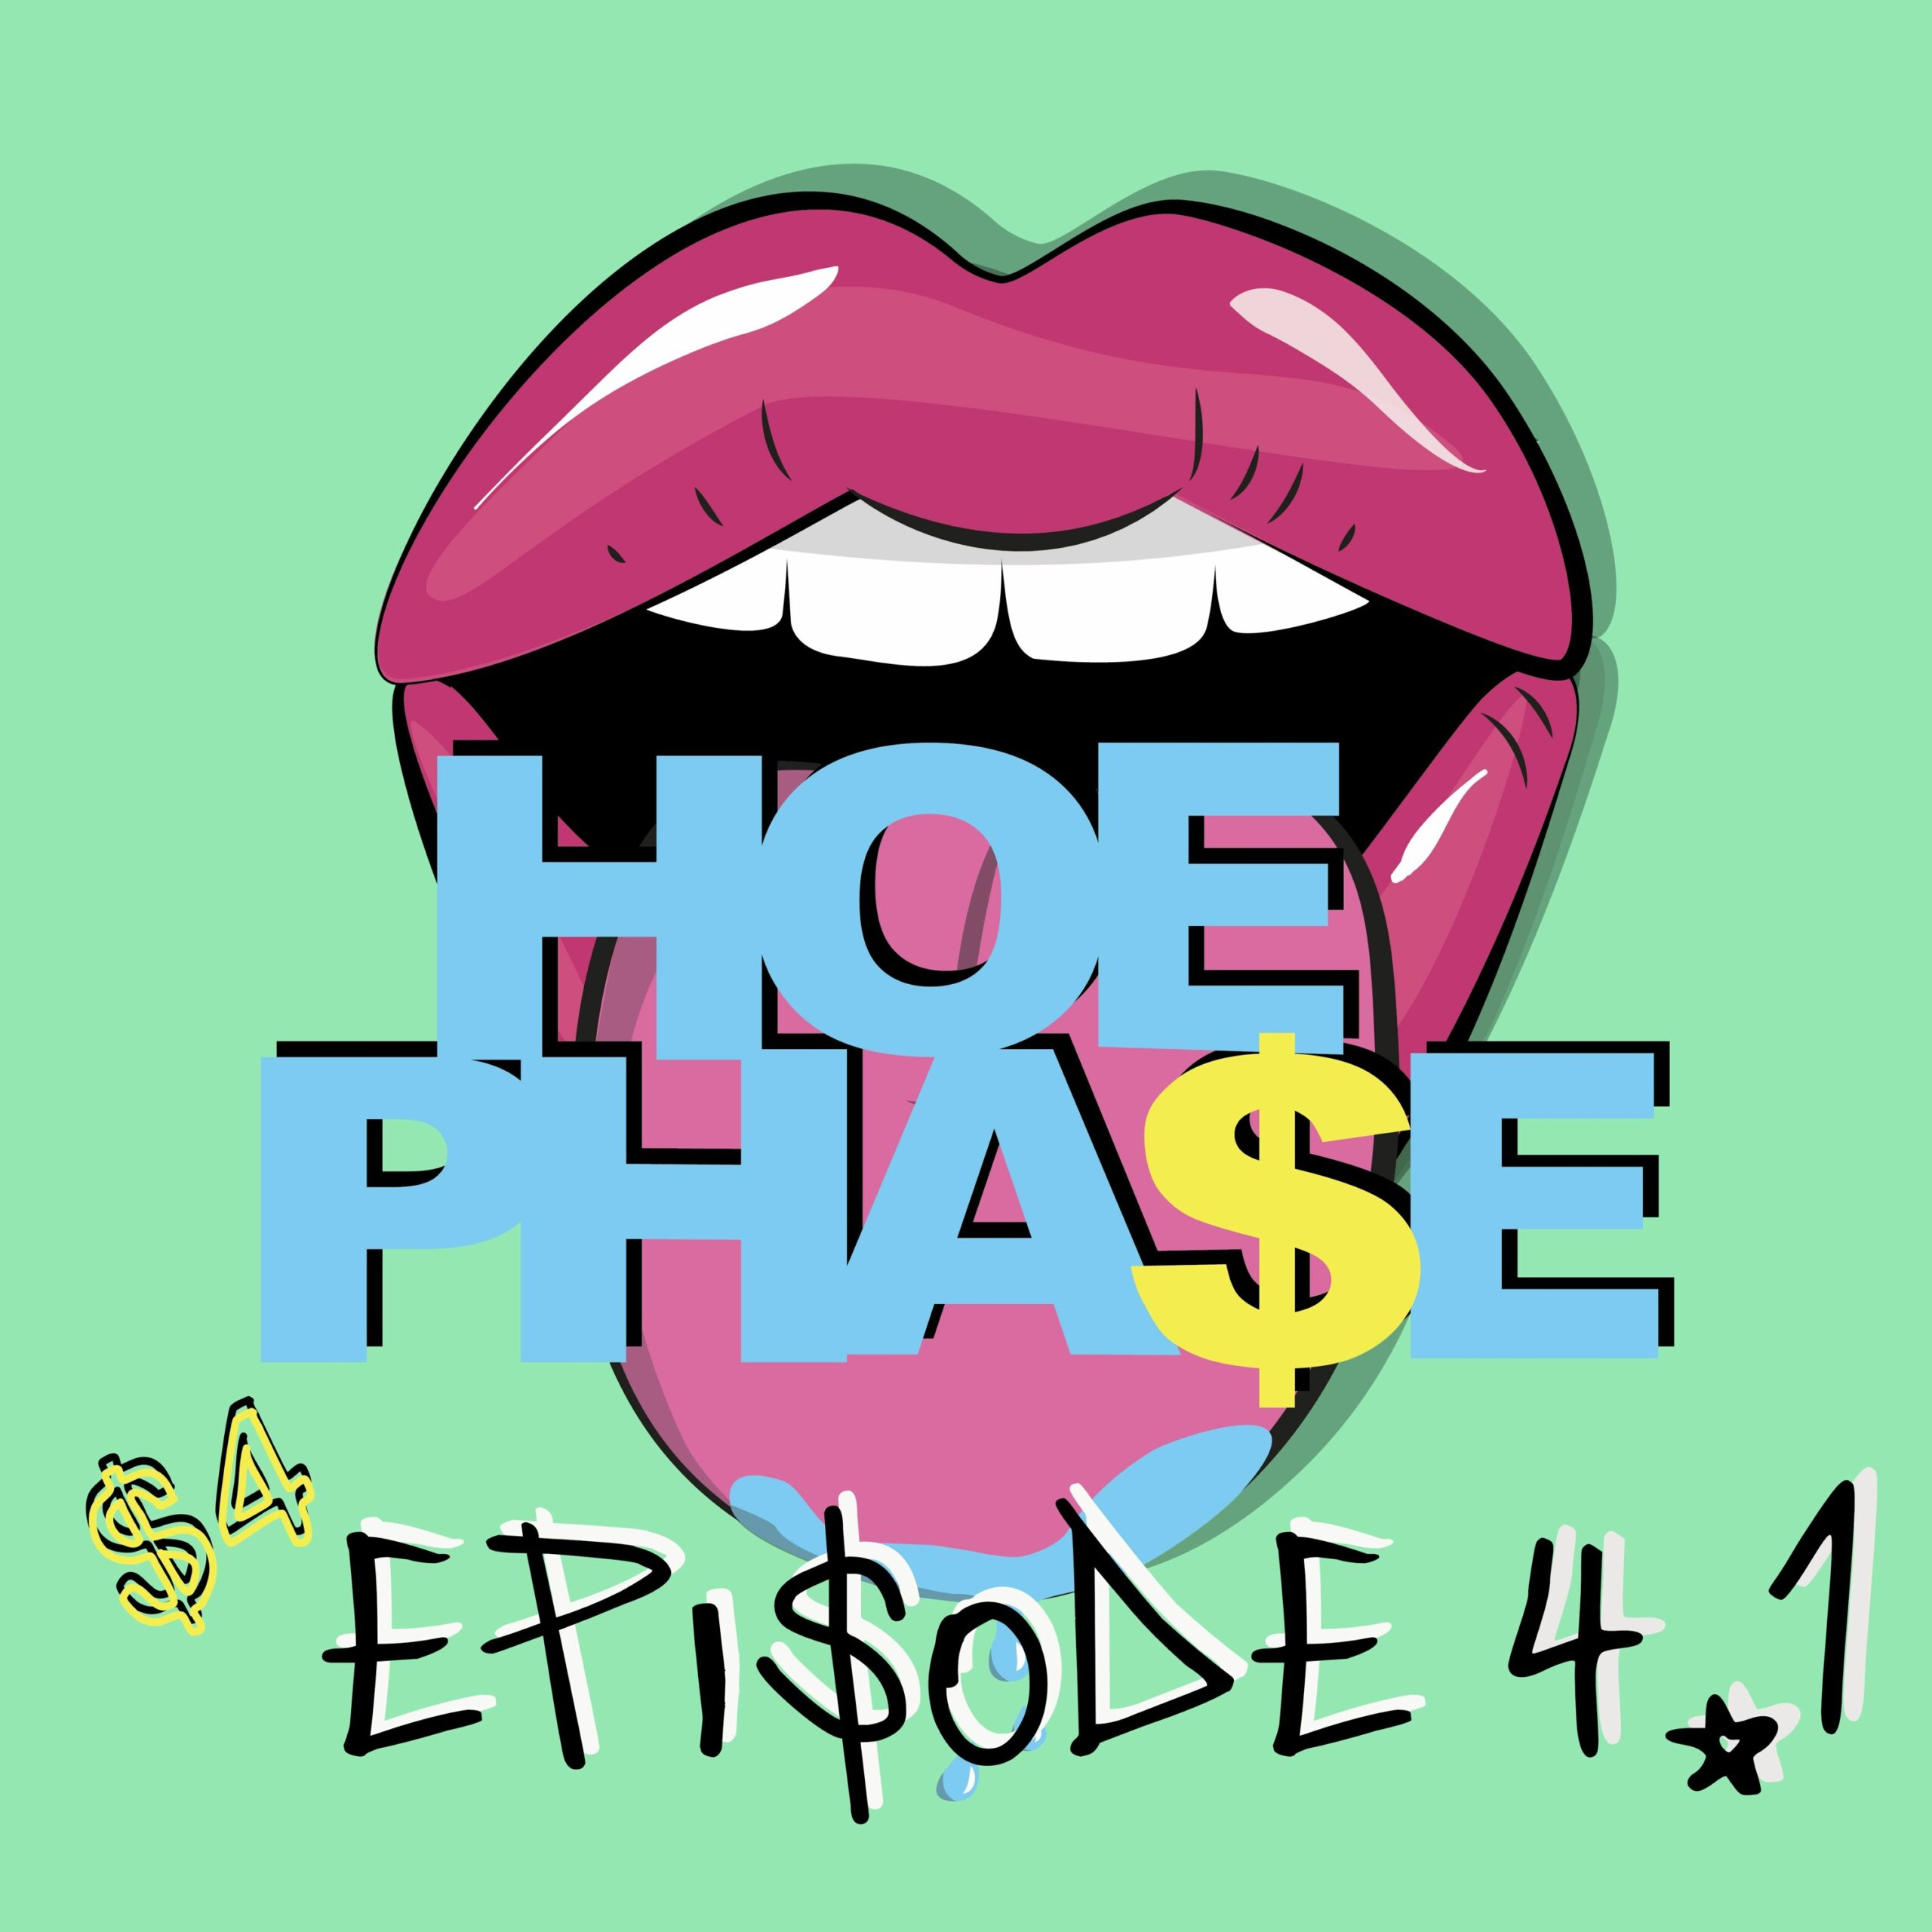 THE HOE PHA$E S4 EP 4.1- 'OPEN UP MORE THAN YOUR LEG$ HOE!!' PT 2.